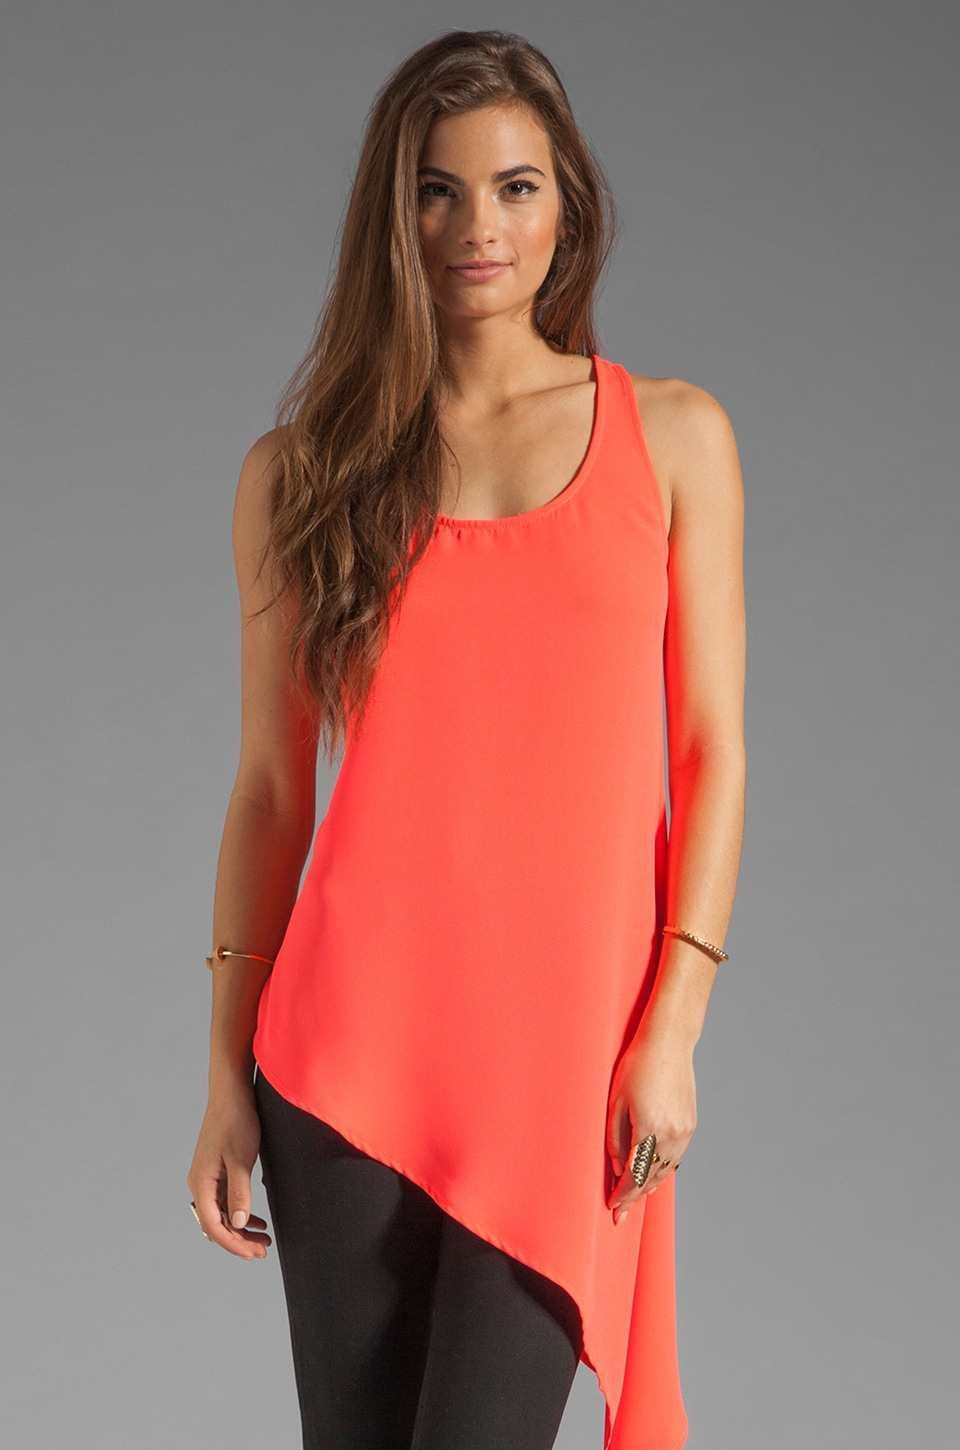 Finders Keepers City Home Tank in Neon Fizz